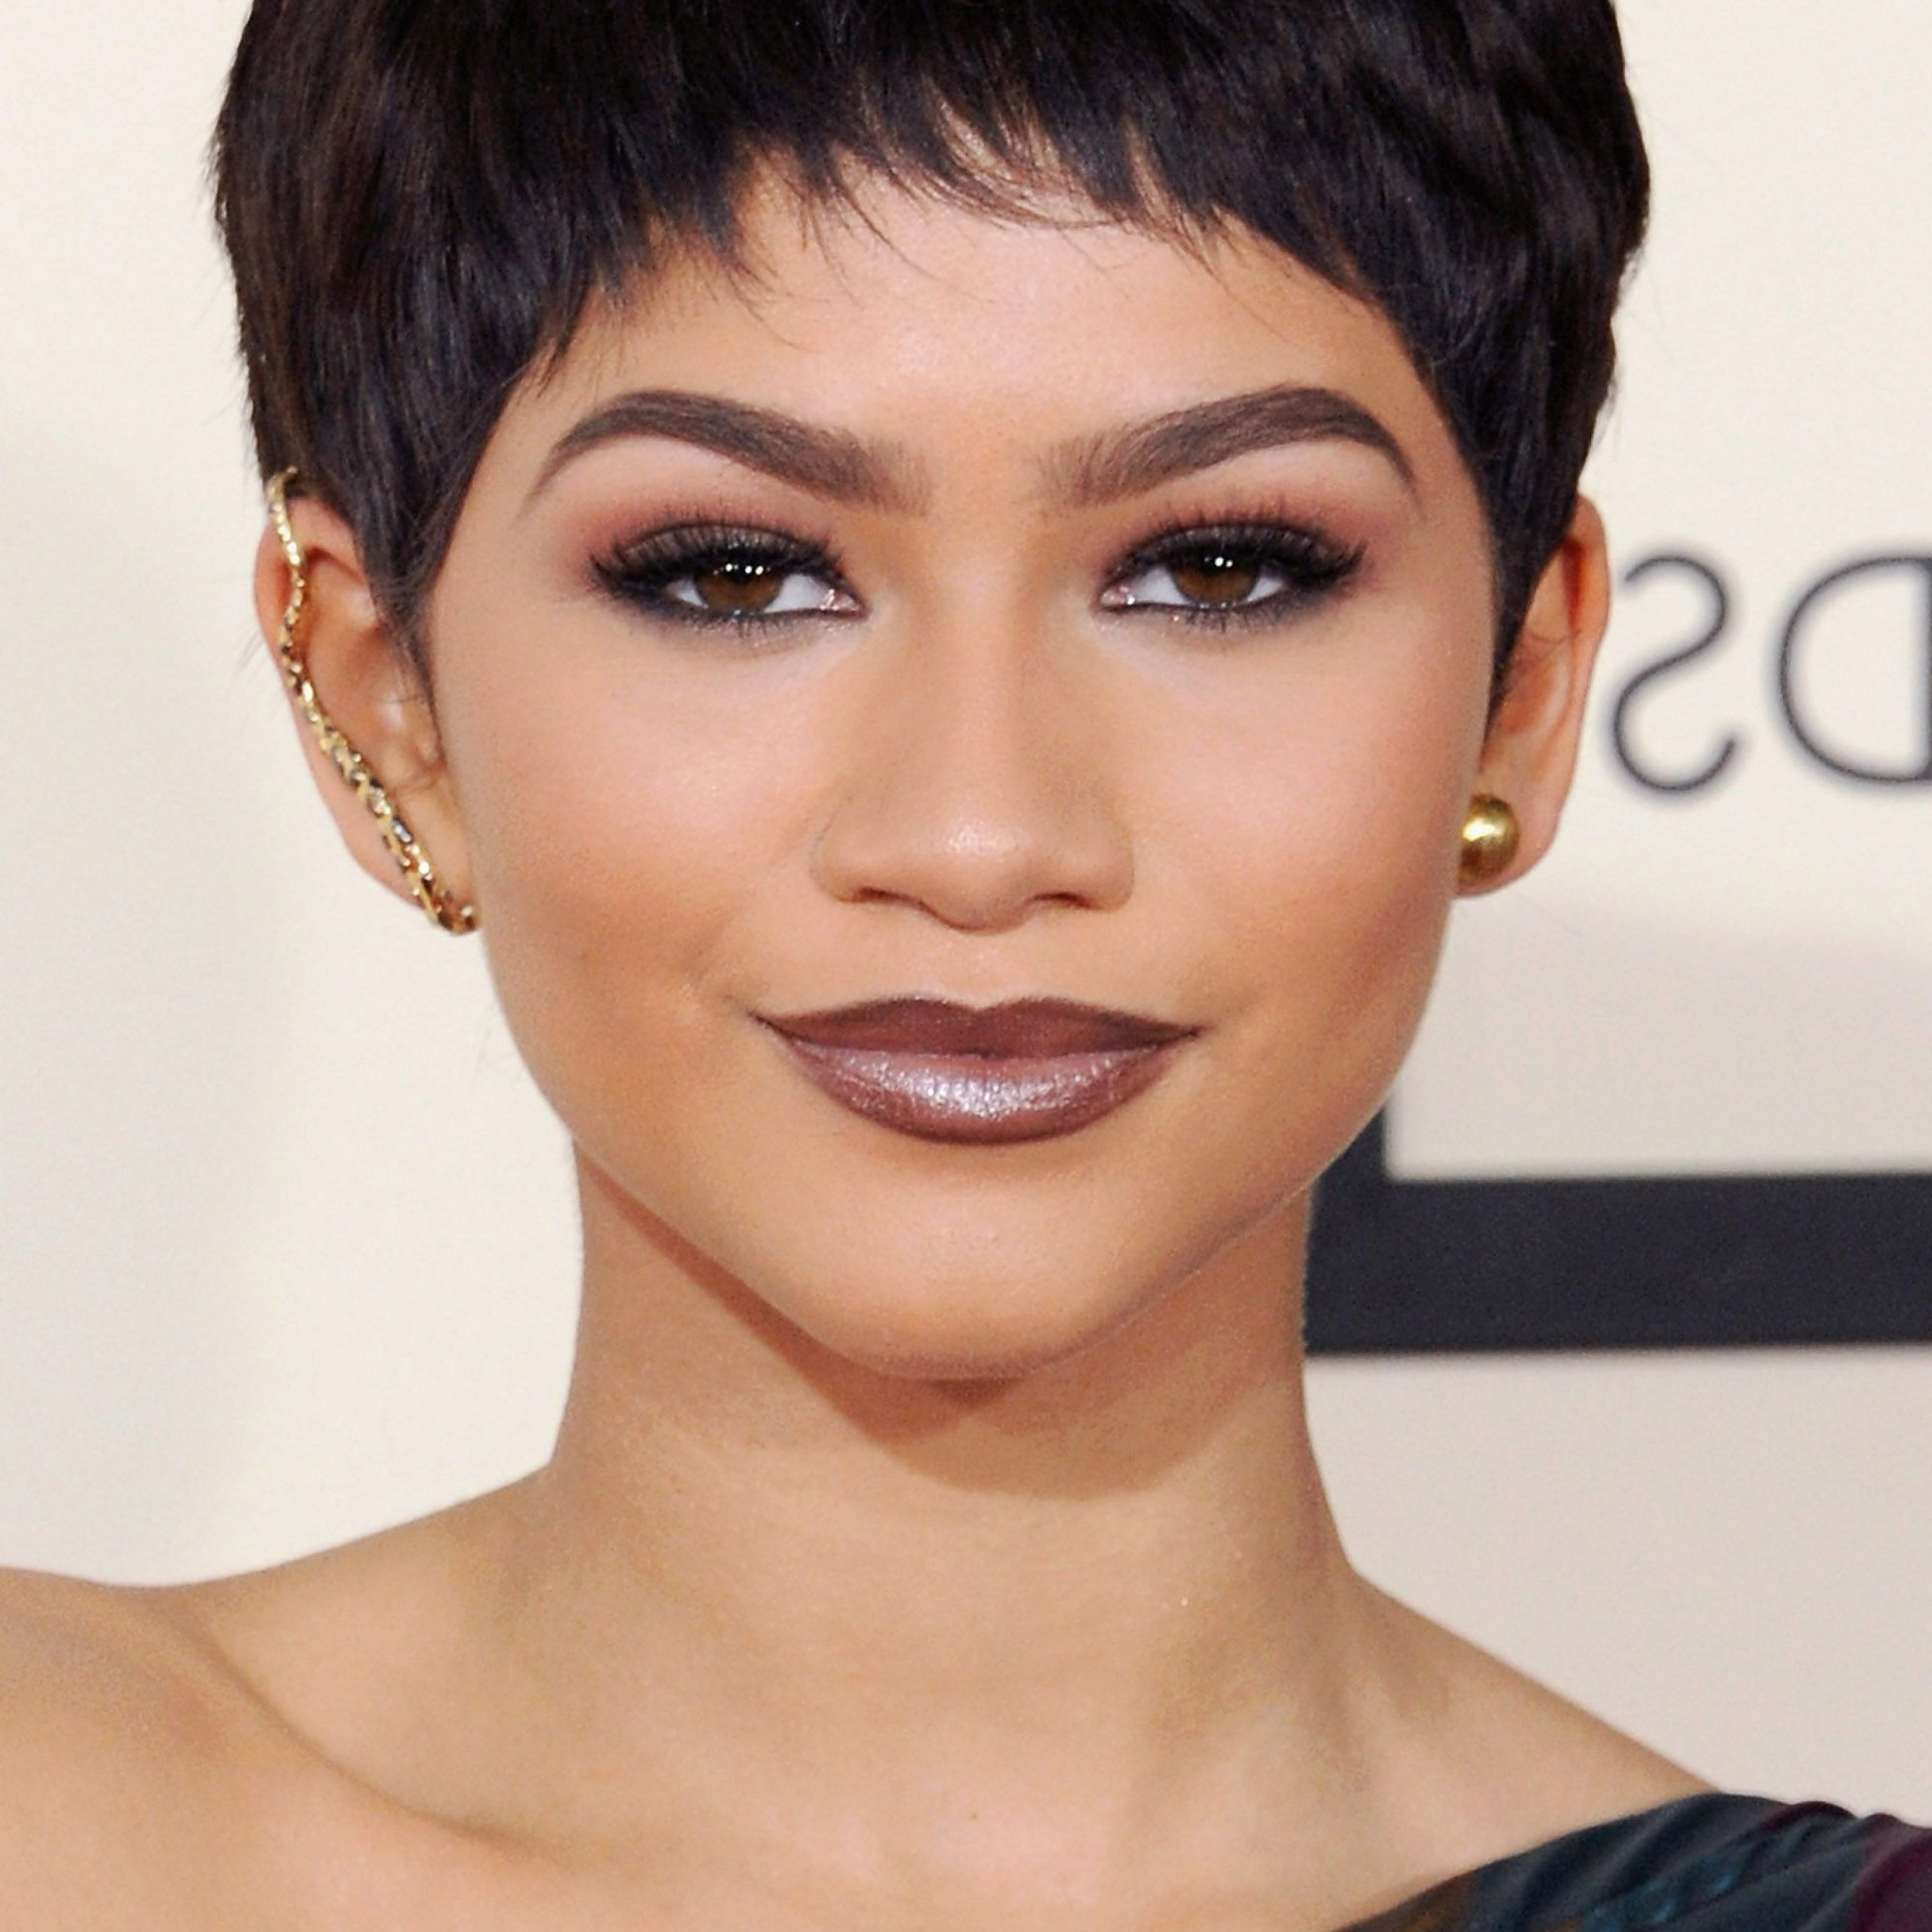 Most Current Short Shaggy Pixie Hairstyles Intended For 60+ Pixie Cuts We Love For 2020 – Short Pixie Hairstyles (View 15 of 20)